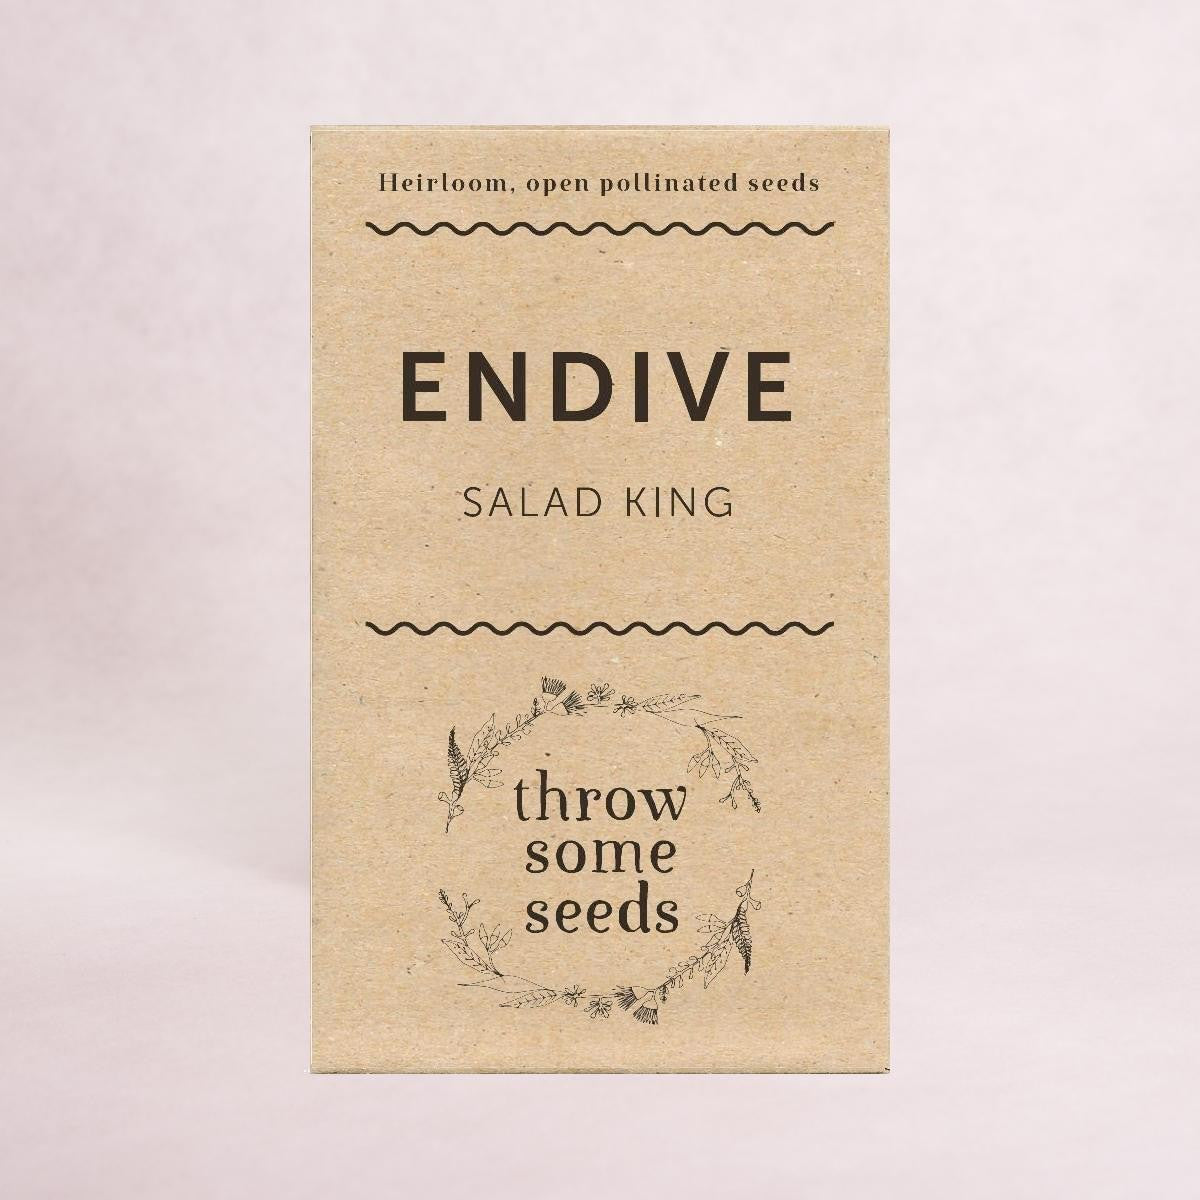 Endive (Salad King) - Heirloom Seeds - Throw Some Seeds